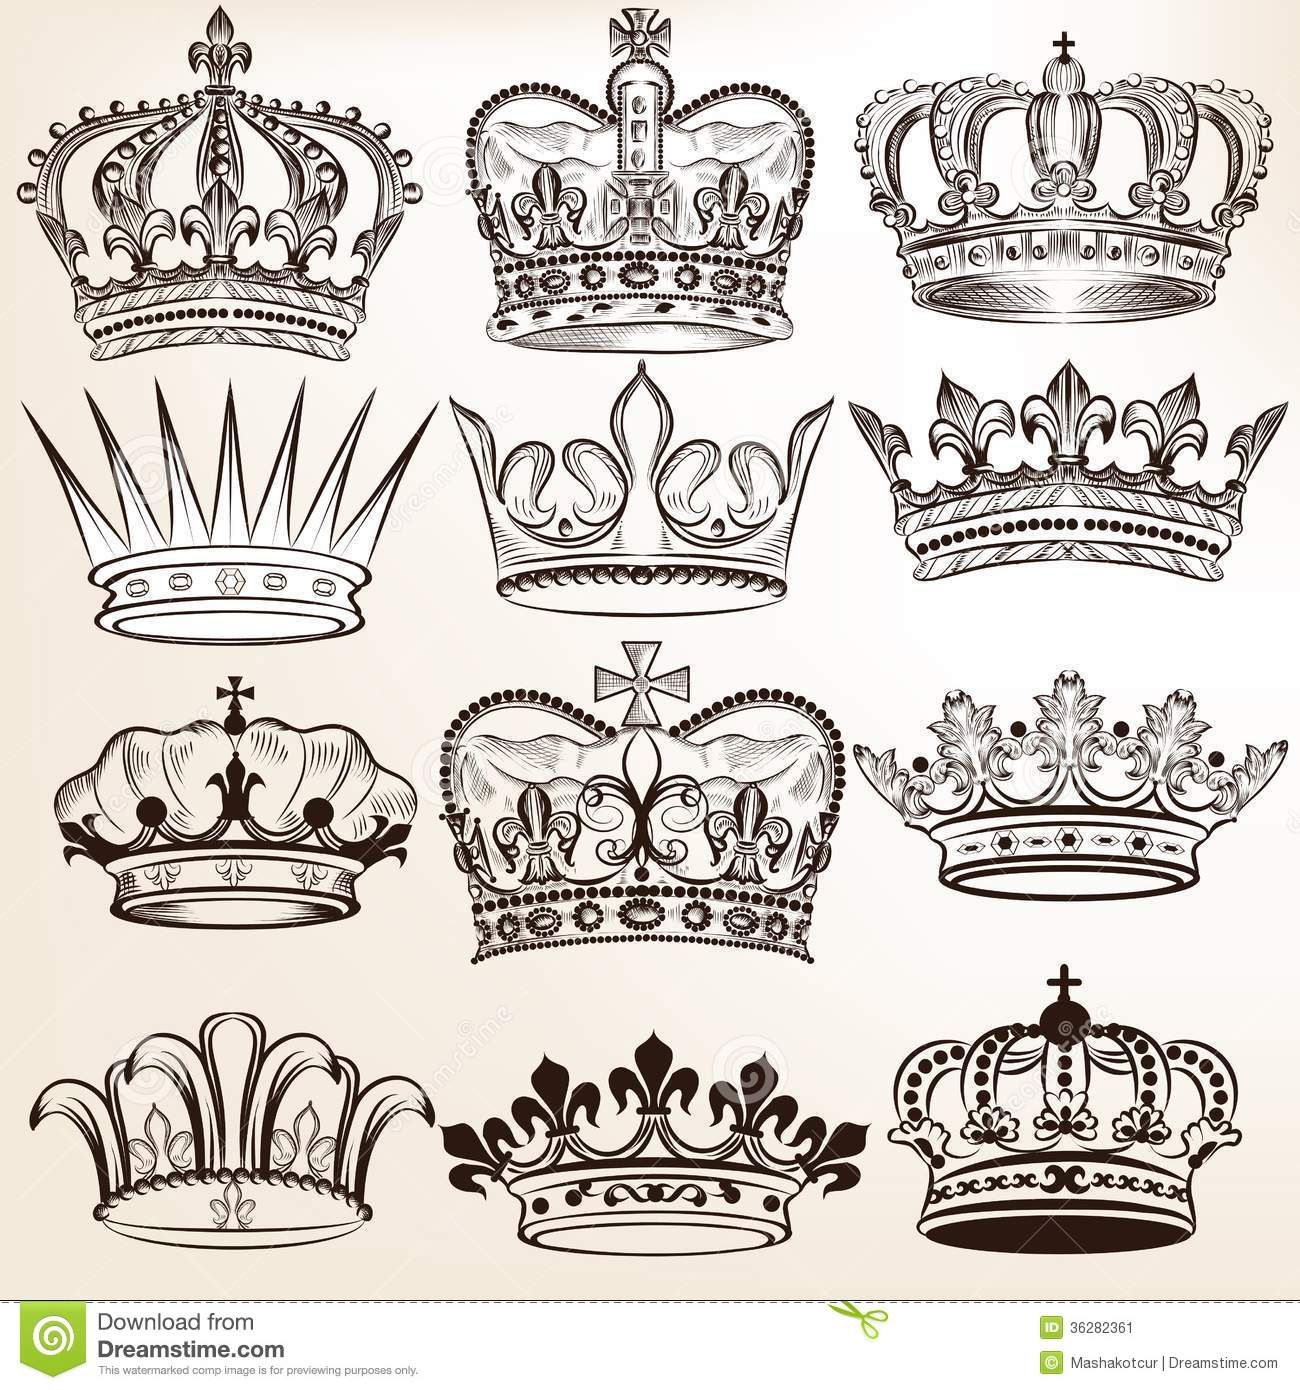 king and queen crown drawing at getdrawings com free for personal rh getdrawings com Female Crown Tattoo Designs Queen Crown Tattoo Sketch